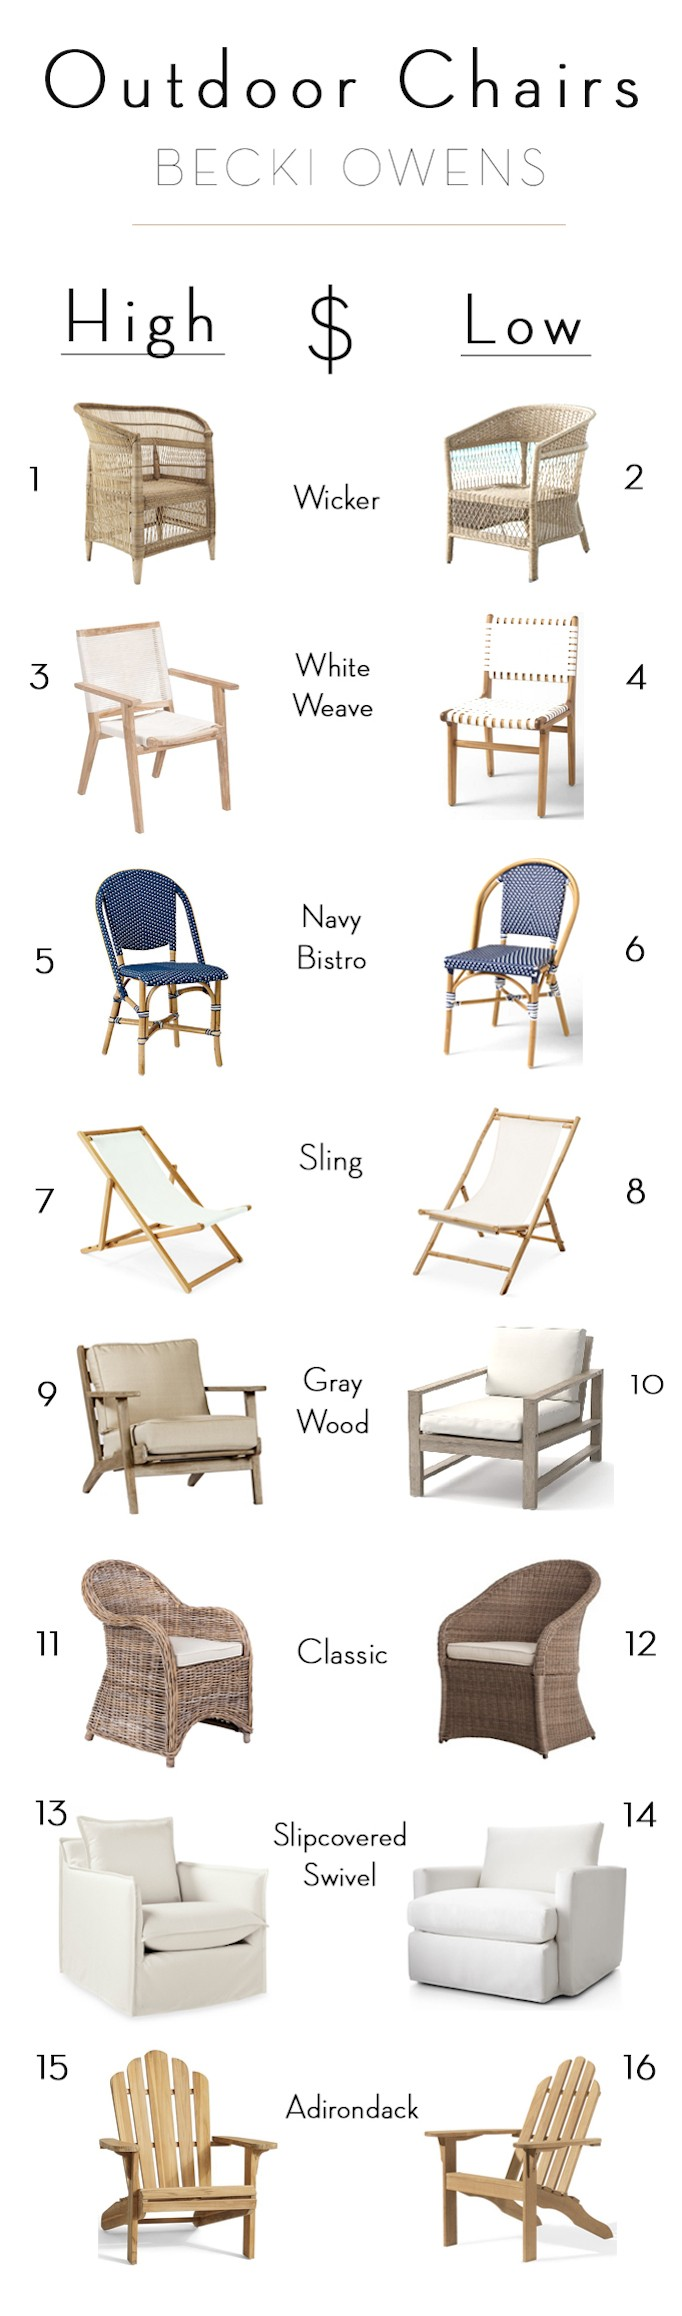 The essential guide to adirondack chairs one kings lane - 1 2 3 4 5 6 7 8 9 10 11 12 13 14 15 16